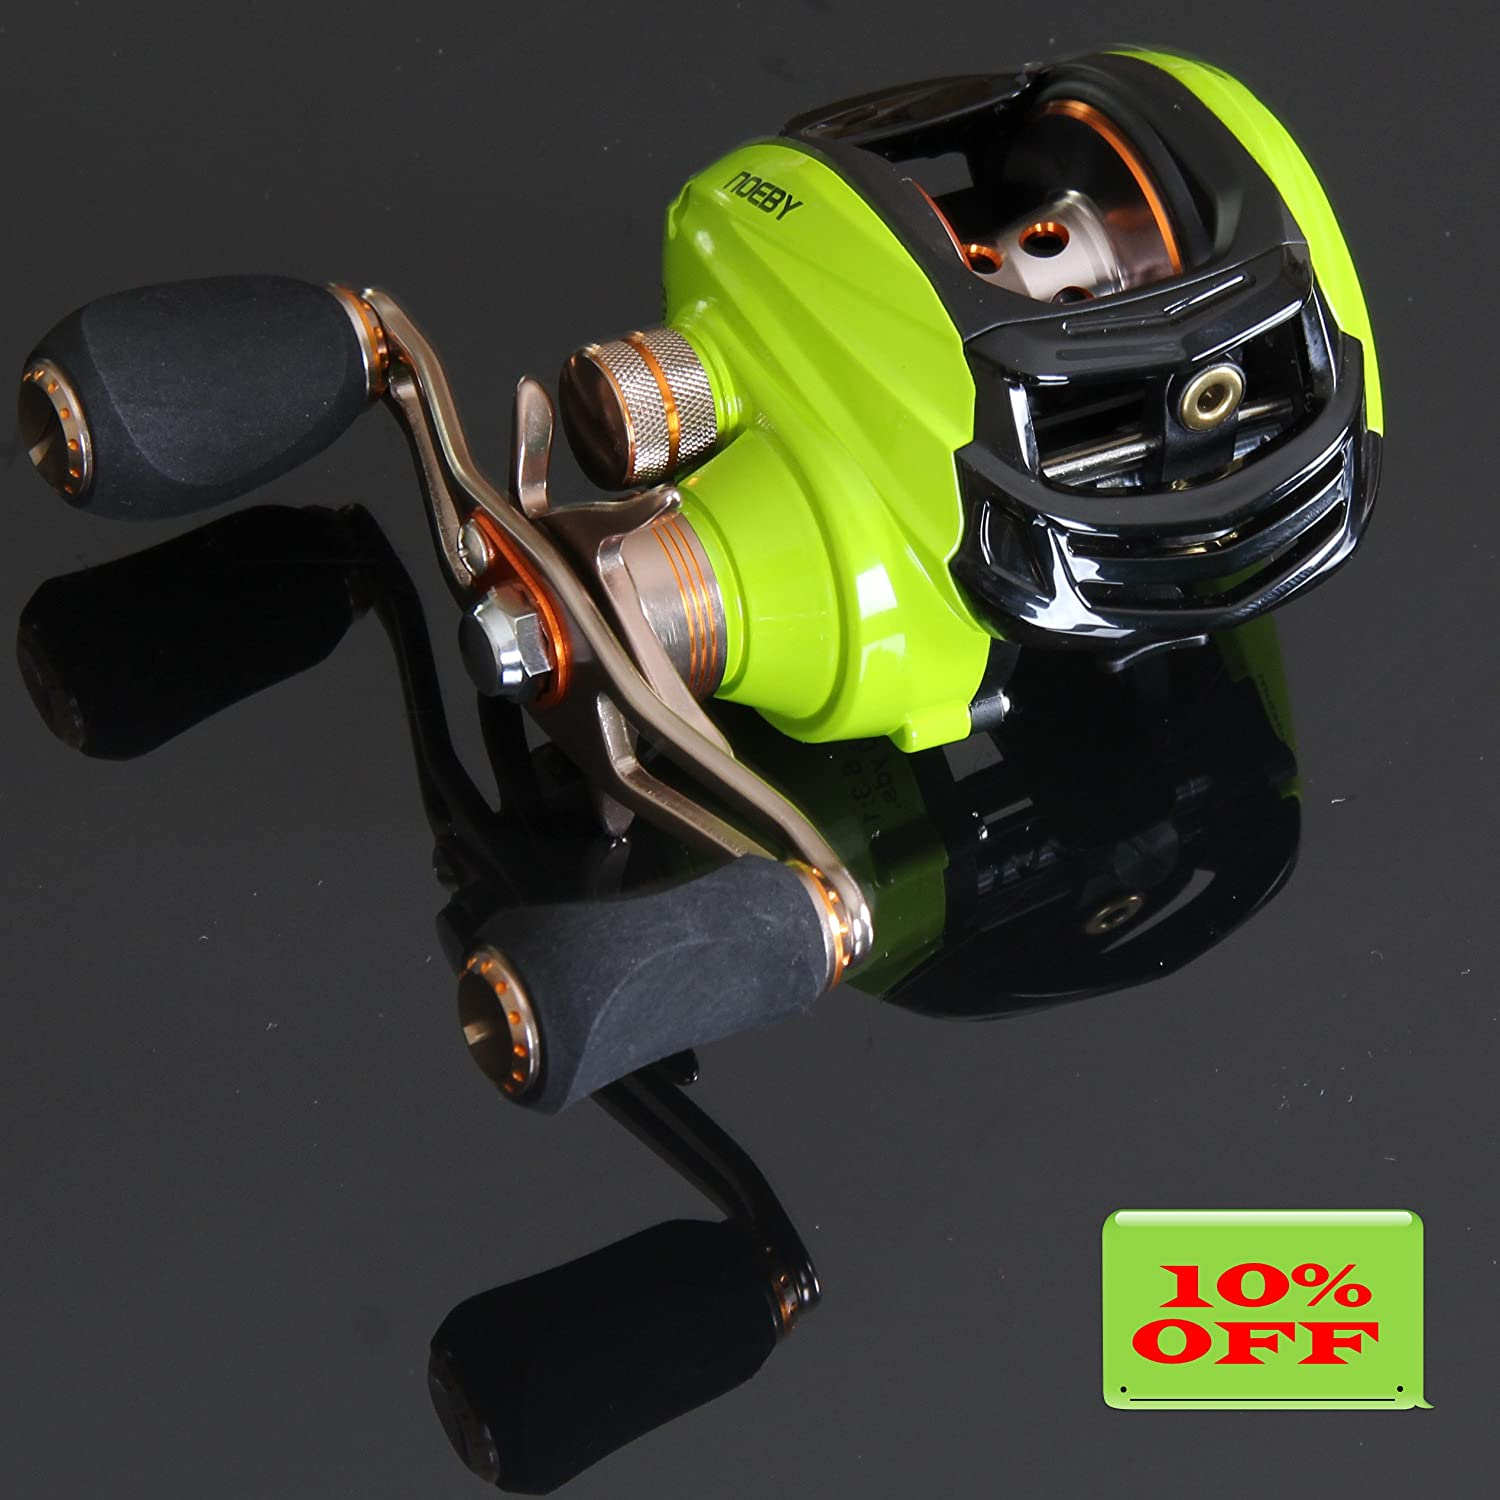 NOEBY Low Profile Baitcasting Fishing Reel with 10 1 Ball Bearings 6.3 1 Gear Ratio Saltwater Baitcast Baitcaster Fishing Reel